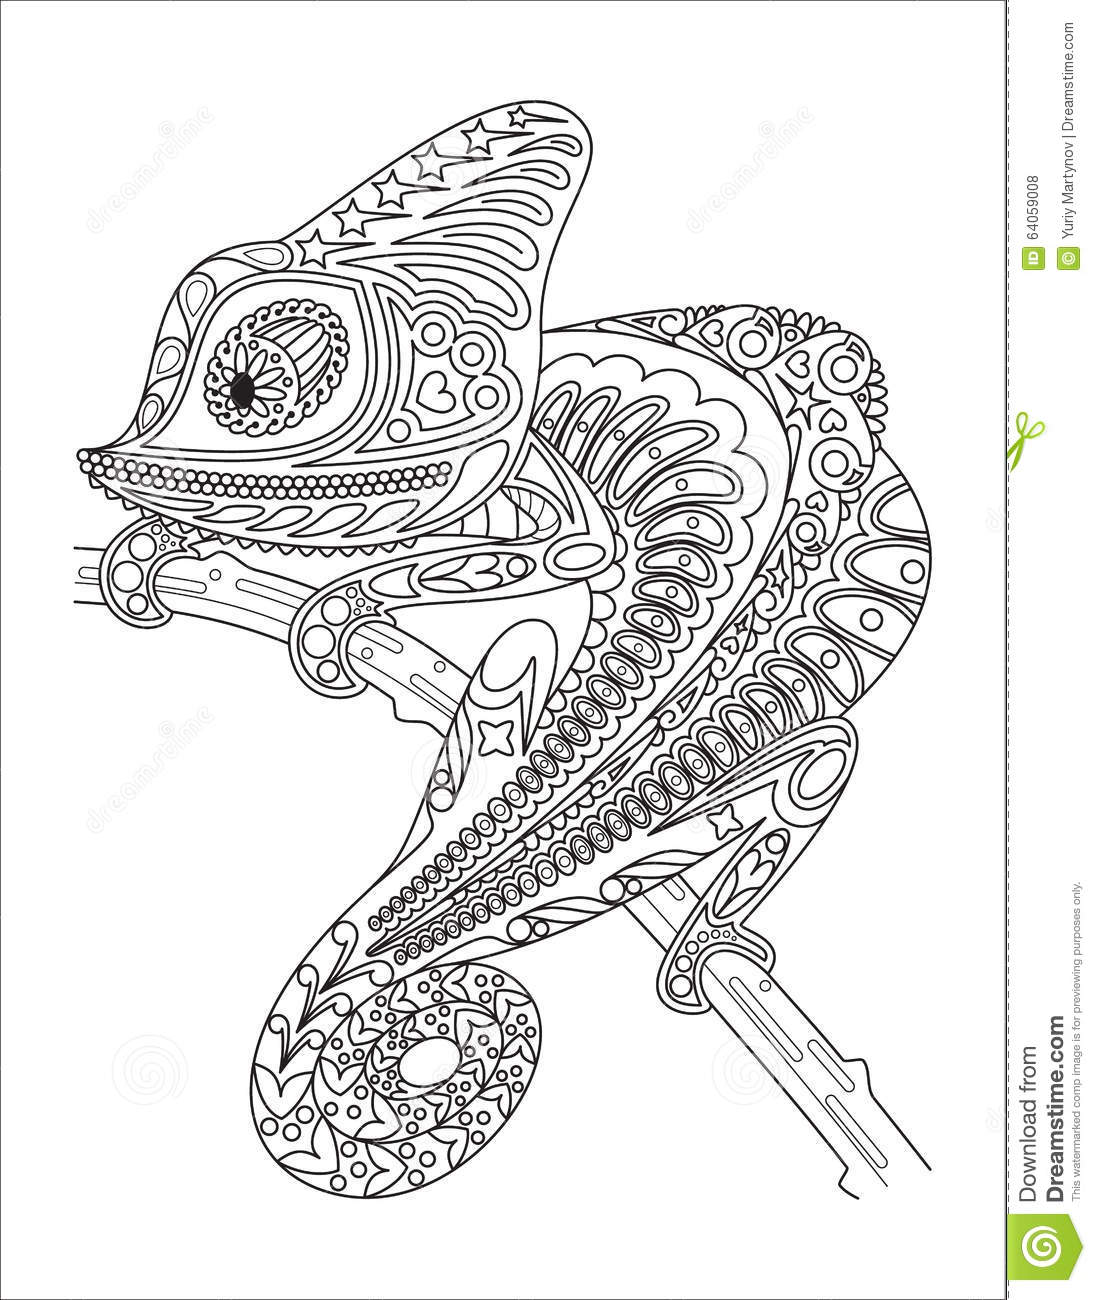 Monochrome Chameleon Coloring Page Black Over Stock Vector ...